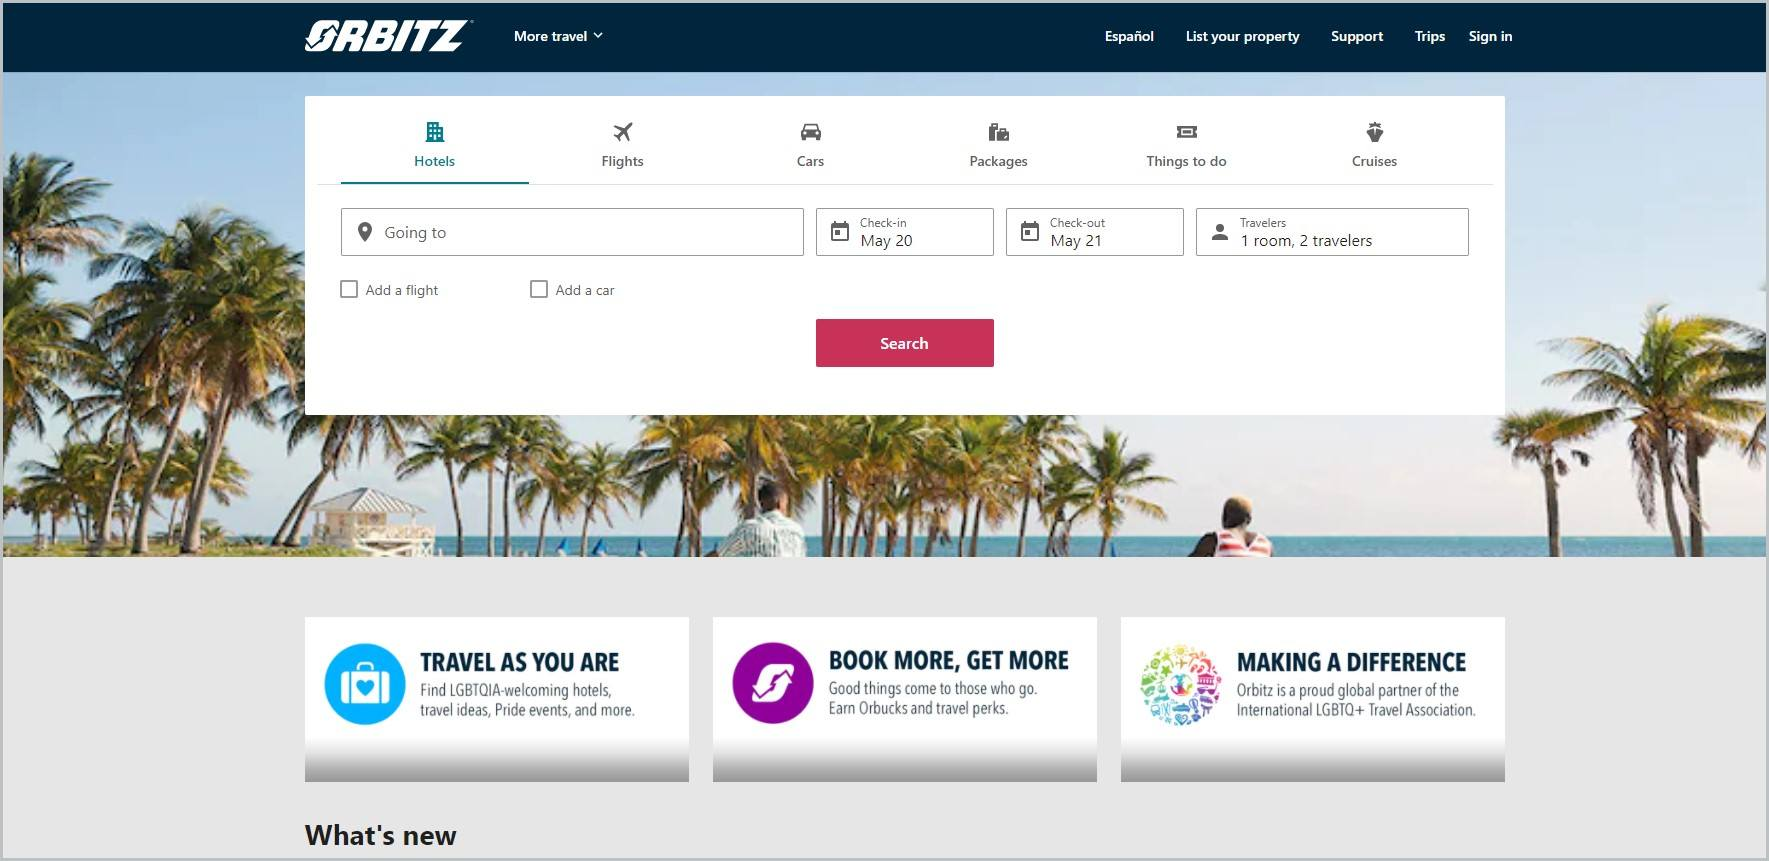 screenshot of Orbitz homepage with black header with the website's name and main navigation menu